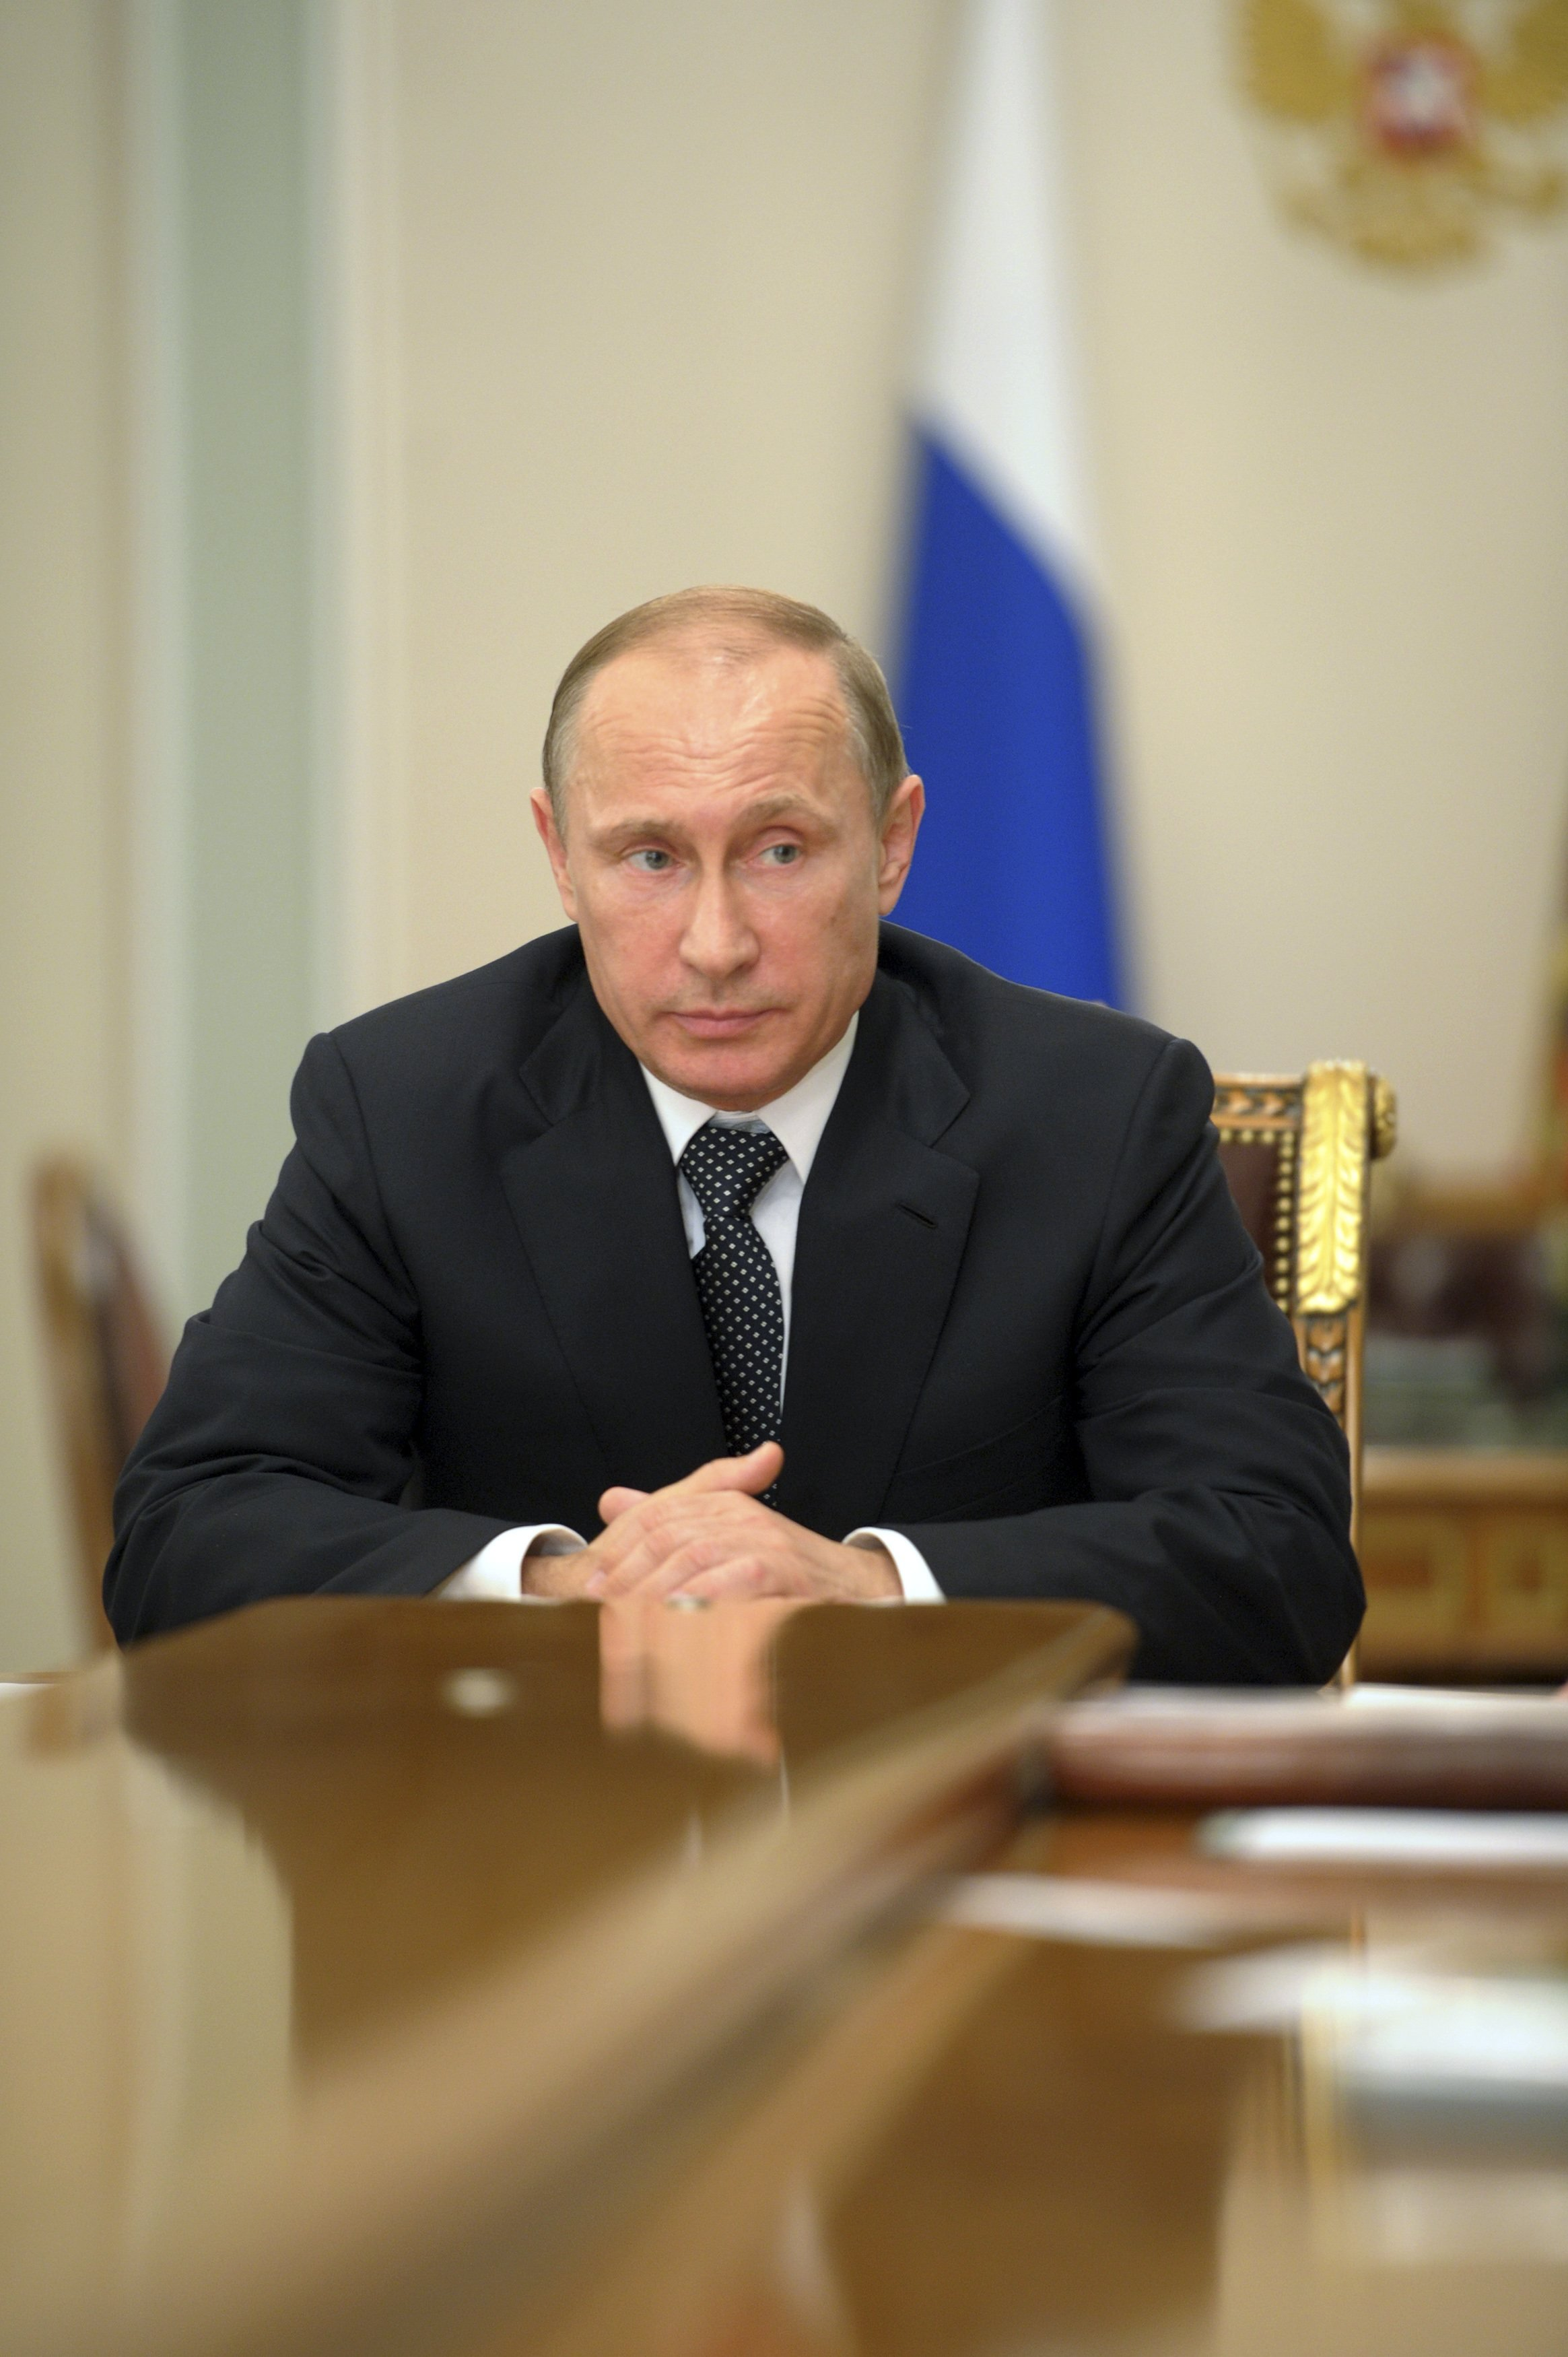 Russia's President Vladimir Putin chairs a meeting at the Novo-Ogaryovo state residence outside Moscow on July 17, 2014.